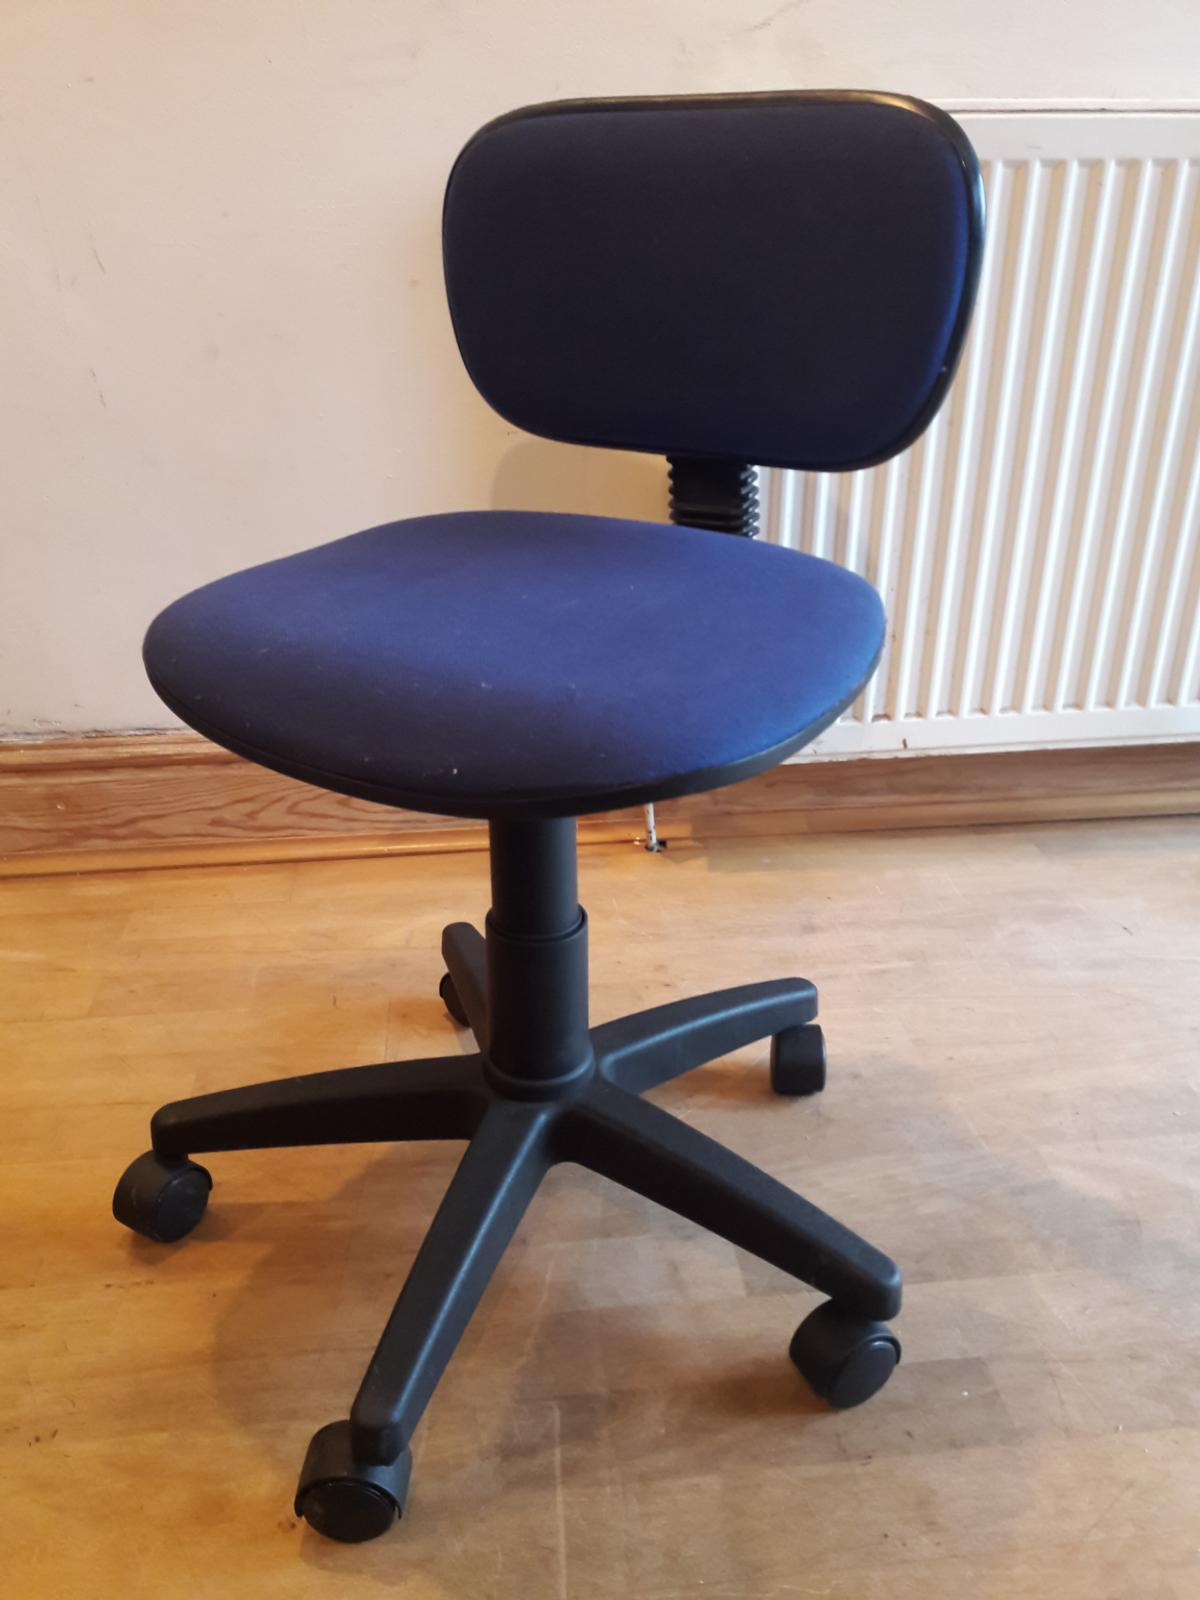 Computer Office Chair Blue Small In Ch3 Huntington For 5 00 For Sale Shpock